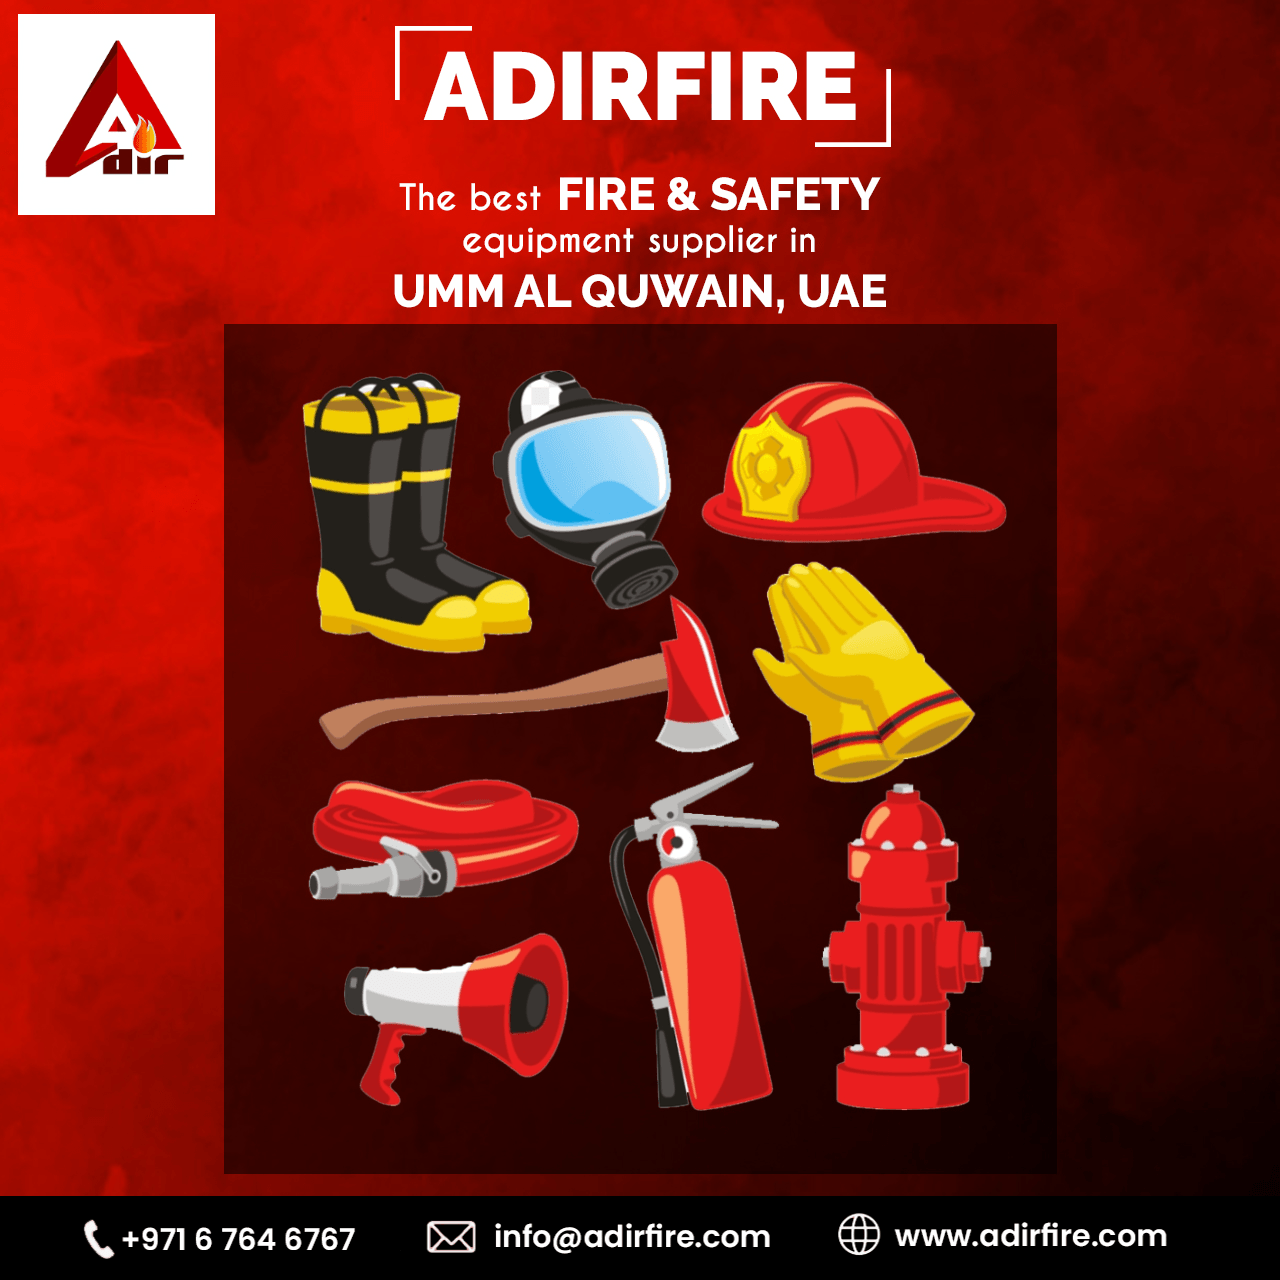 We are here to help you with all your fire & safety